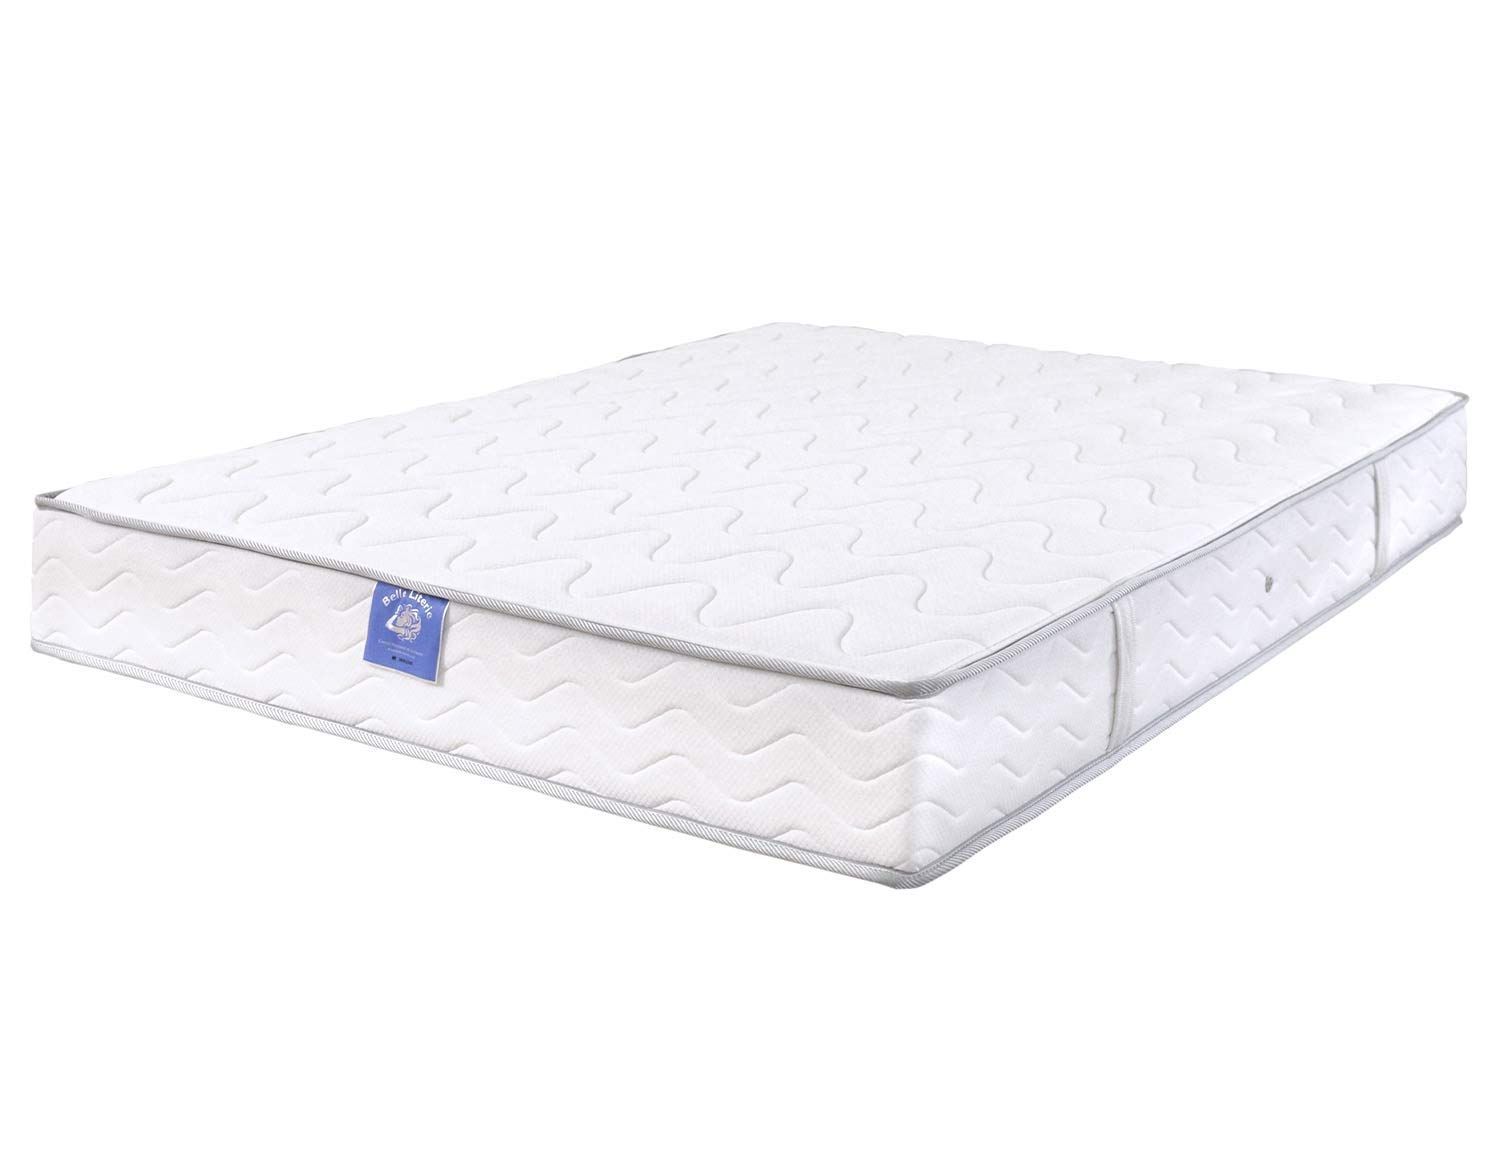 Belle Literie Matelas Forum Visco 22 Cm Blanc 120 X 190 Cm In 2020 Mattress Decor Home Decor